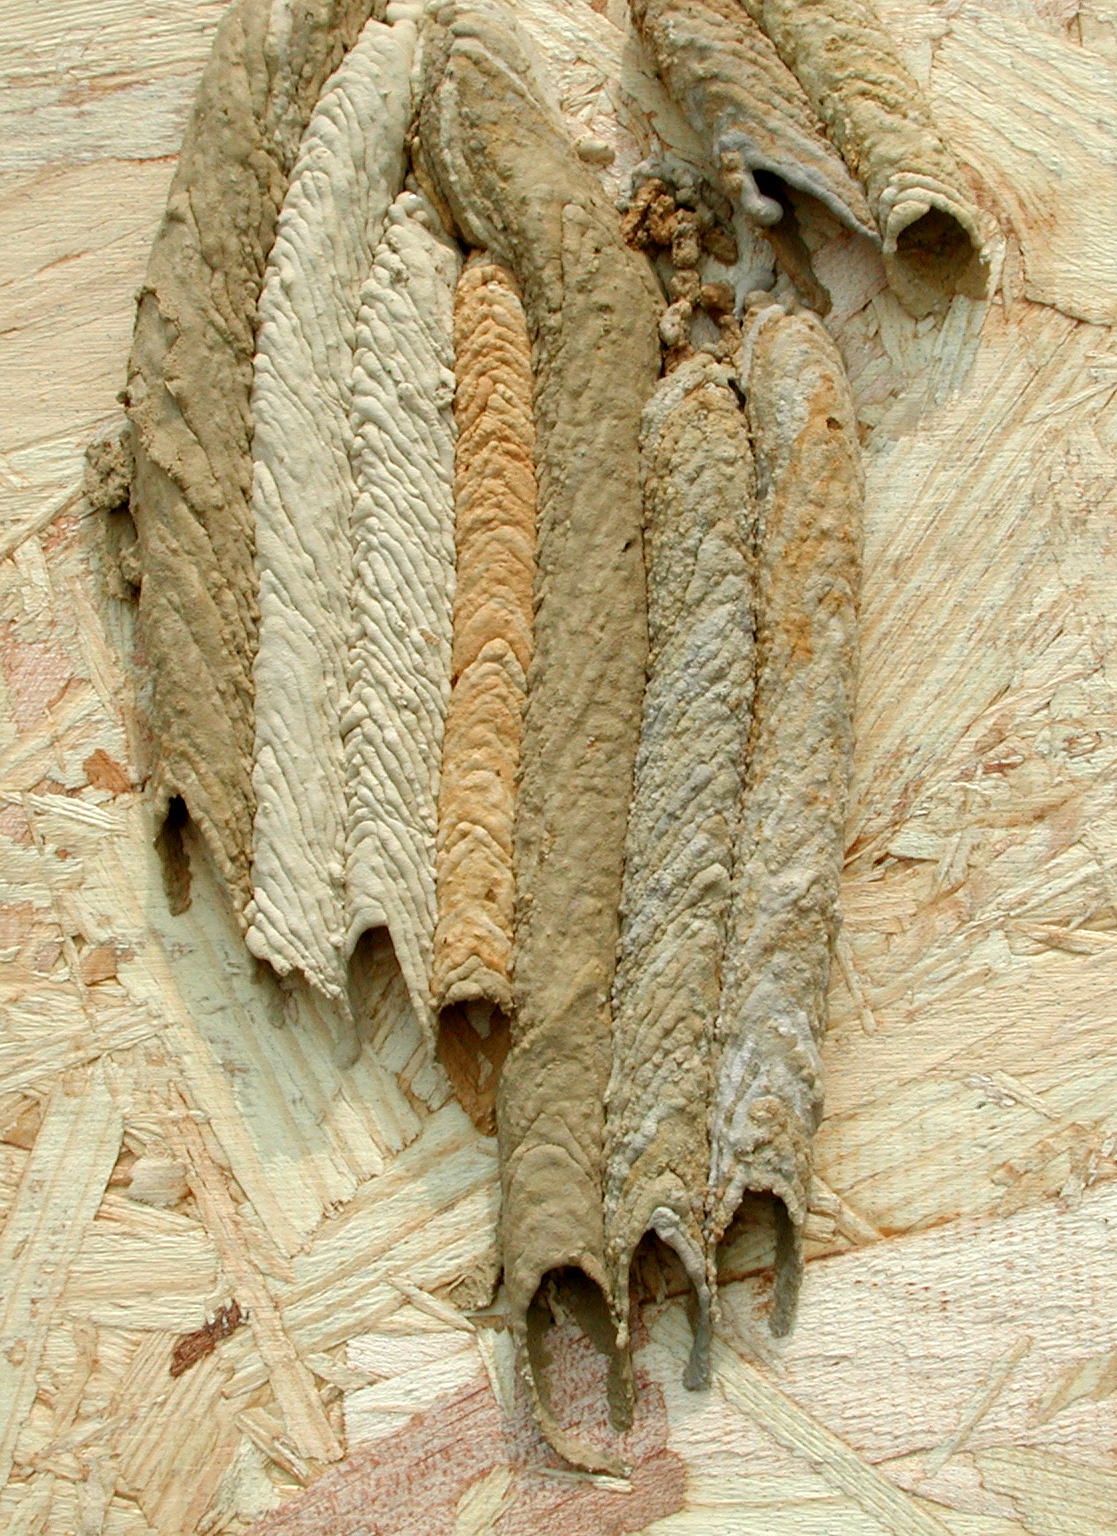 Signs of wasp nests